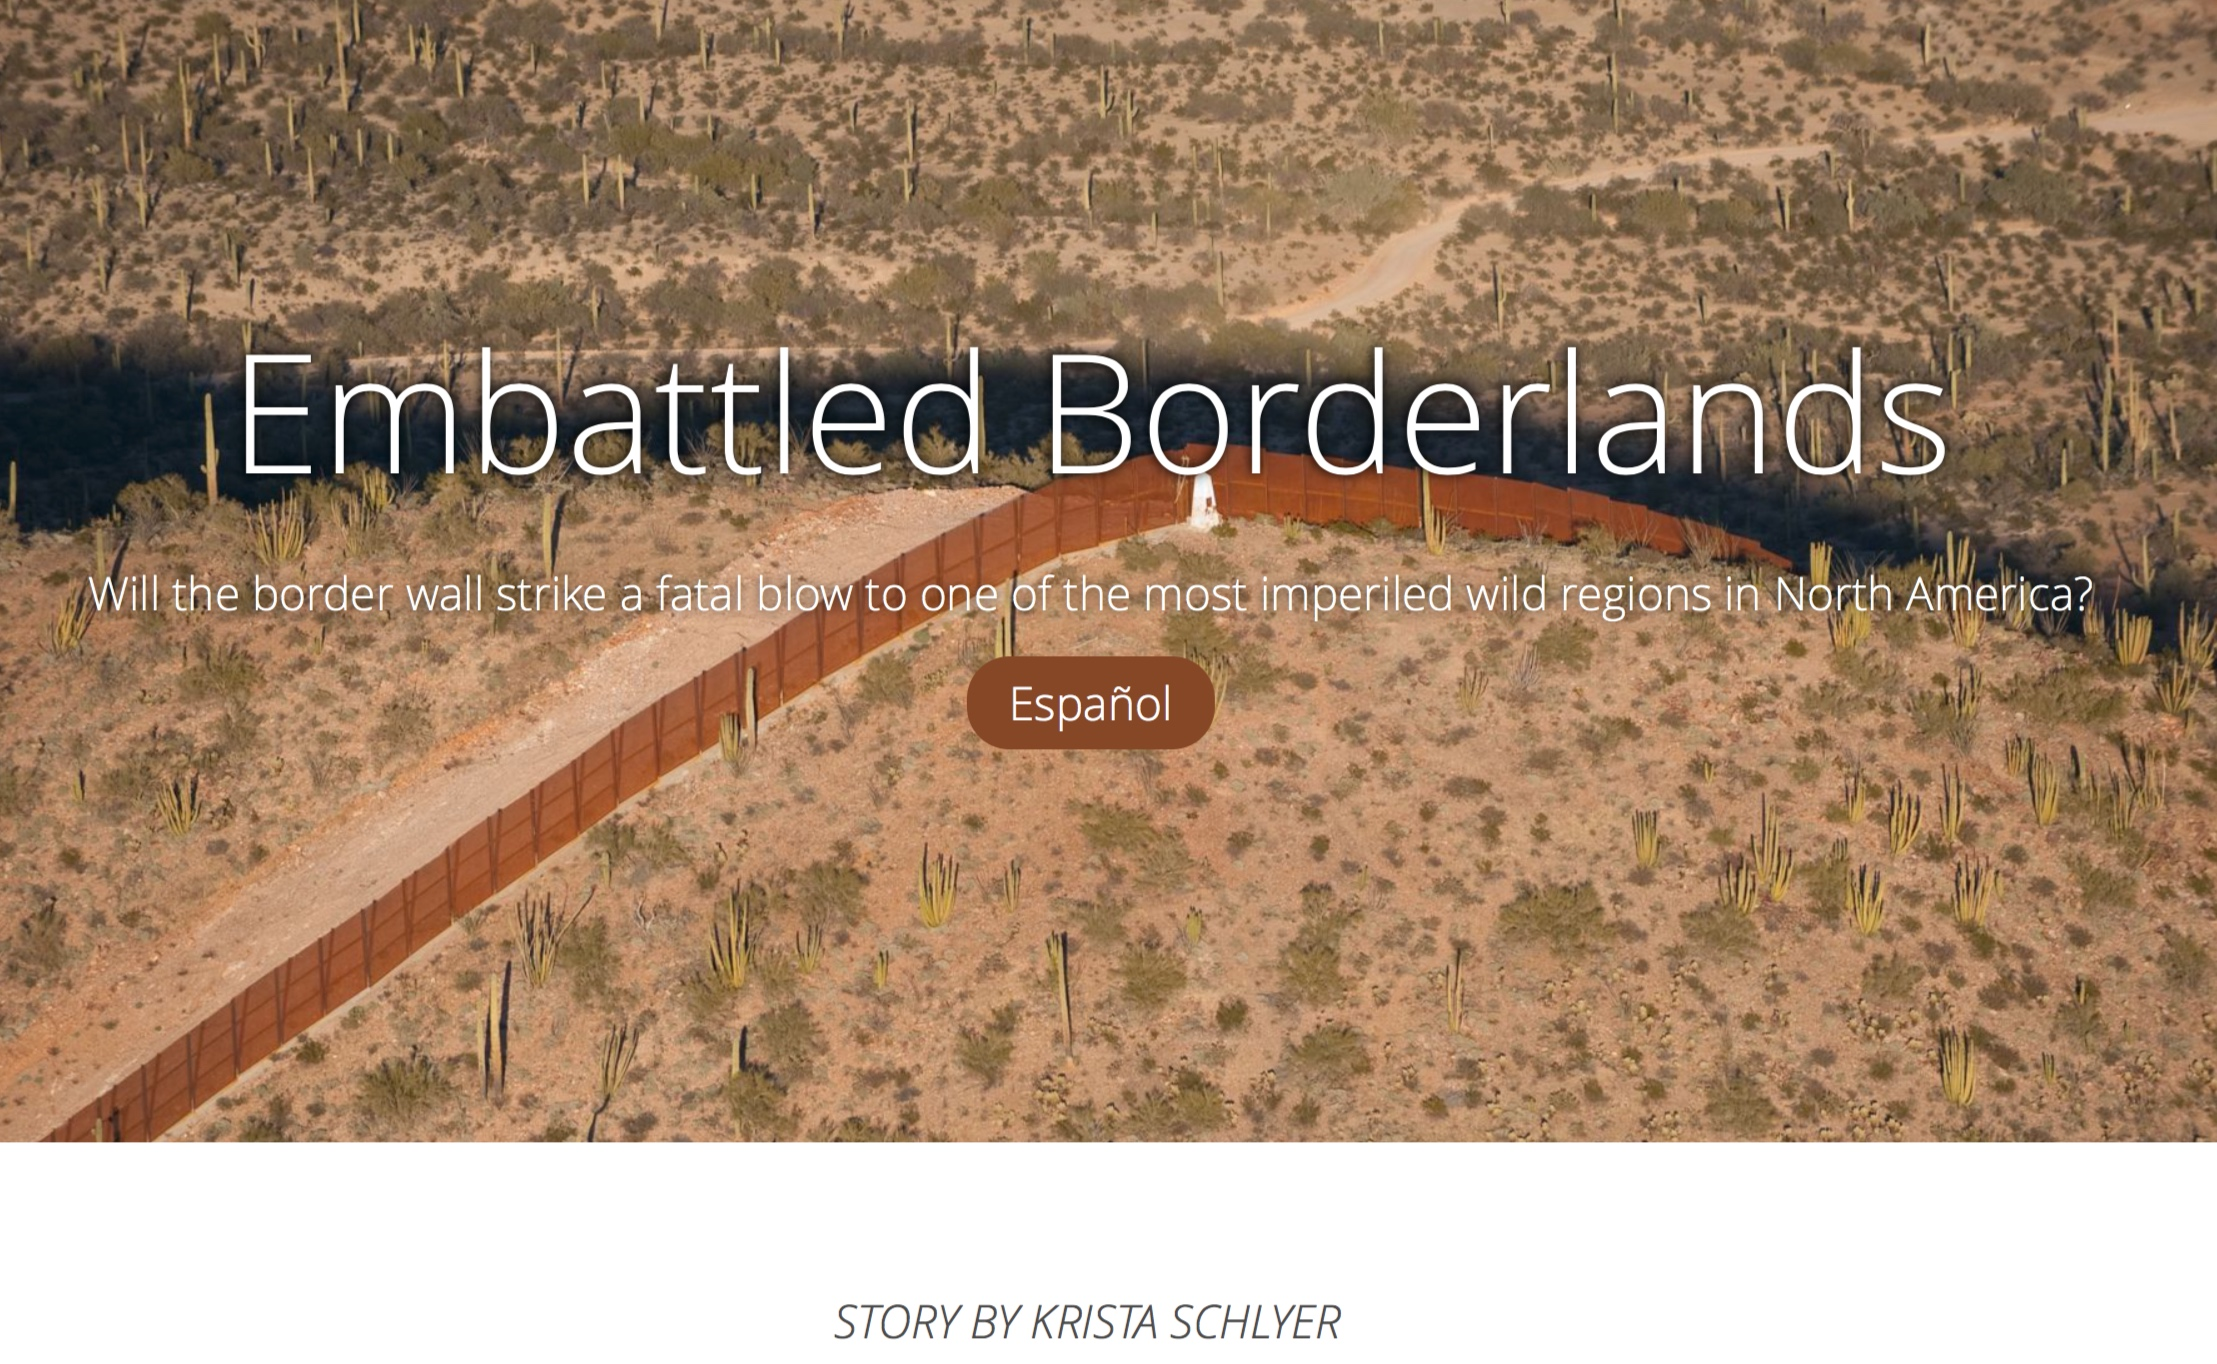 Click on the photo to take an interactive multimedia journey along the border and learn how border walls and militarization have been impacting the region over the past decade.